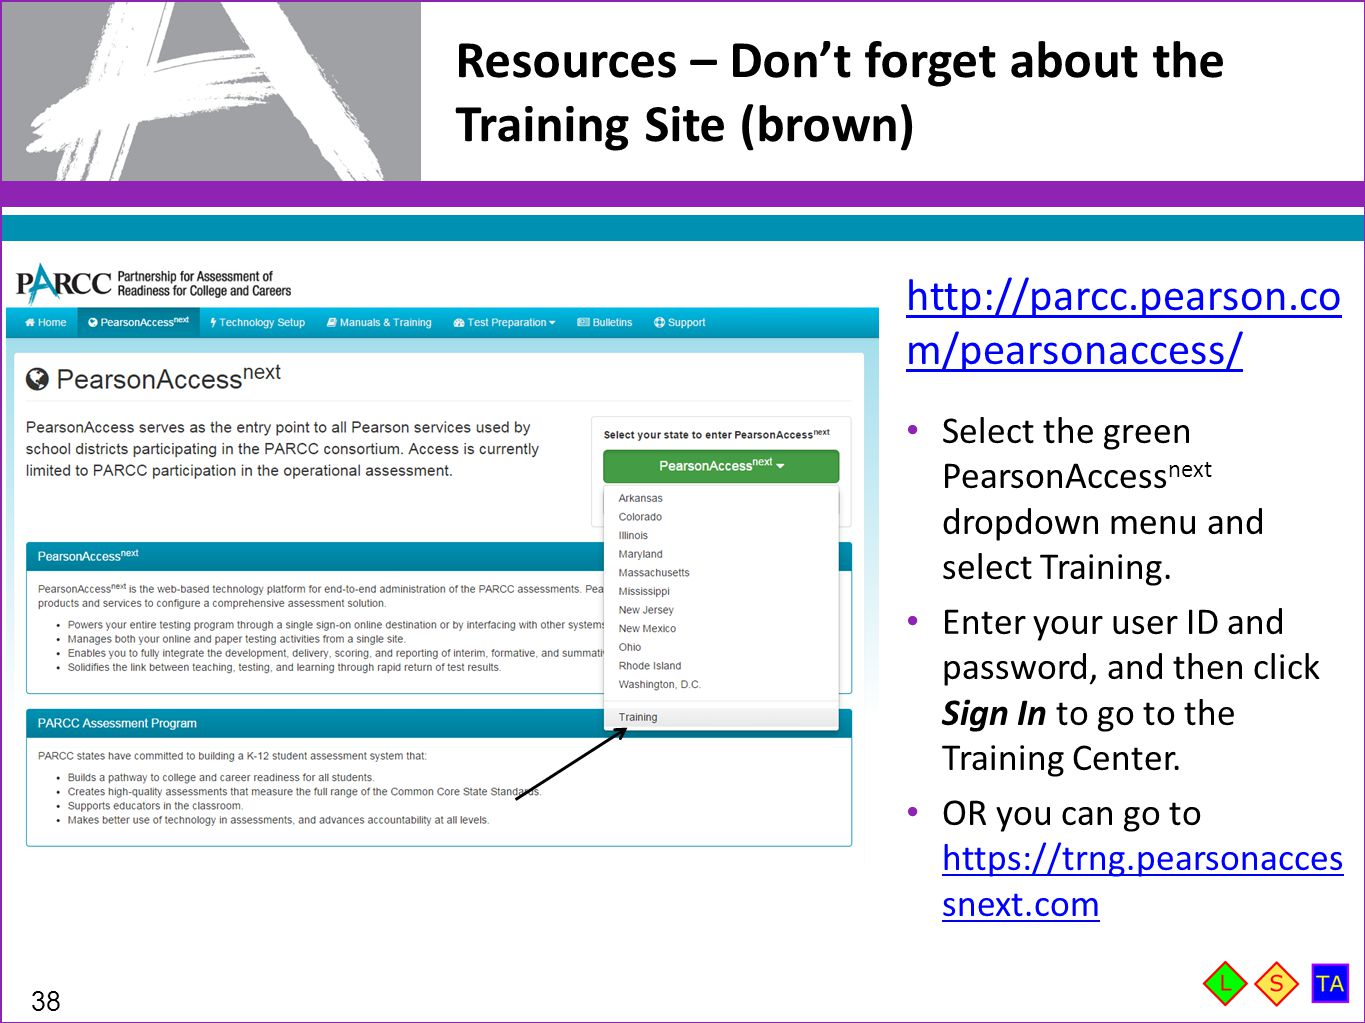 Resources – Don't forget about the Training Site (brown) 38 http://parcc.pearson.co m/pearsonaccess/ Select the green PearsonAccess next dropdown menu